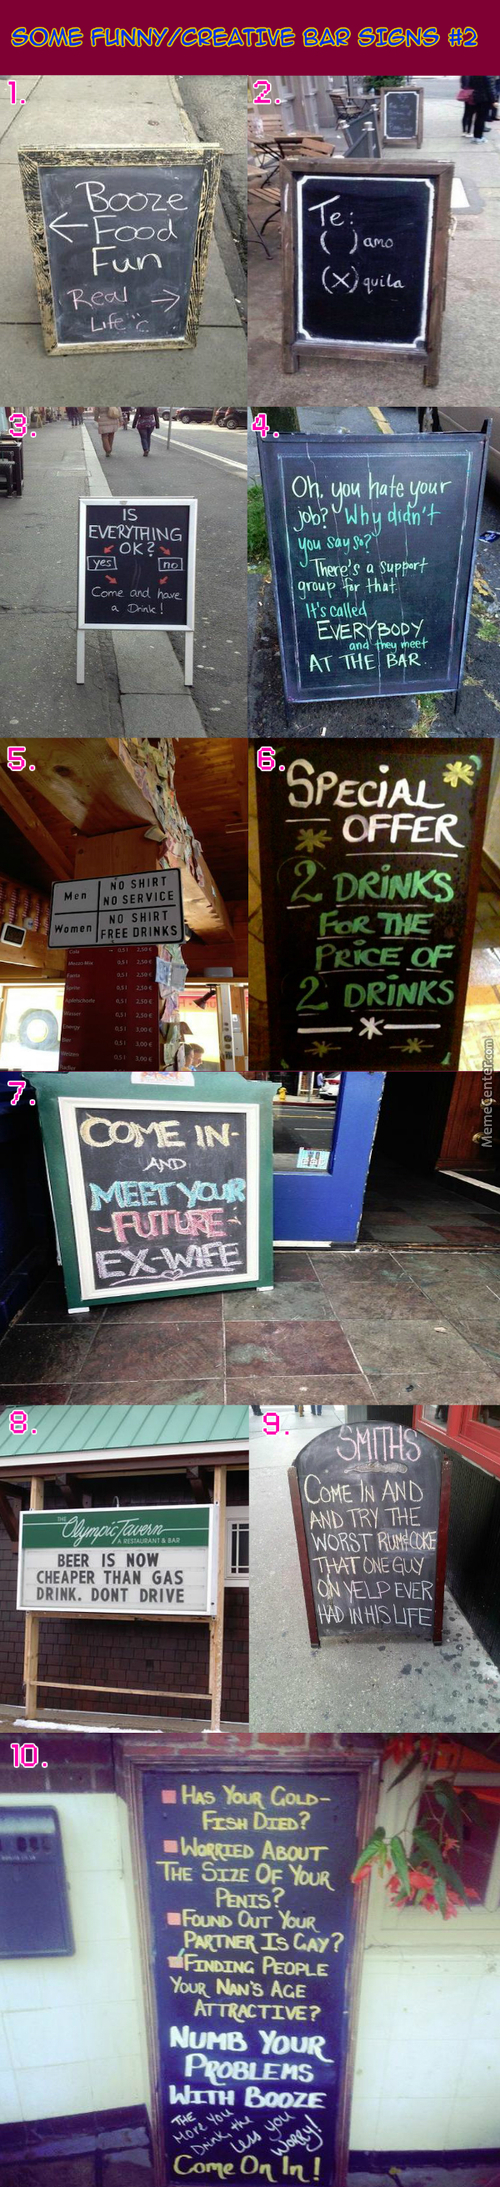 Funny / Creative Bar Signs #2: Wow! Two Drinks For The Price Of Two Drinks? How Cool Is Tha..... Wait A Minute......